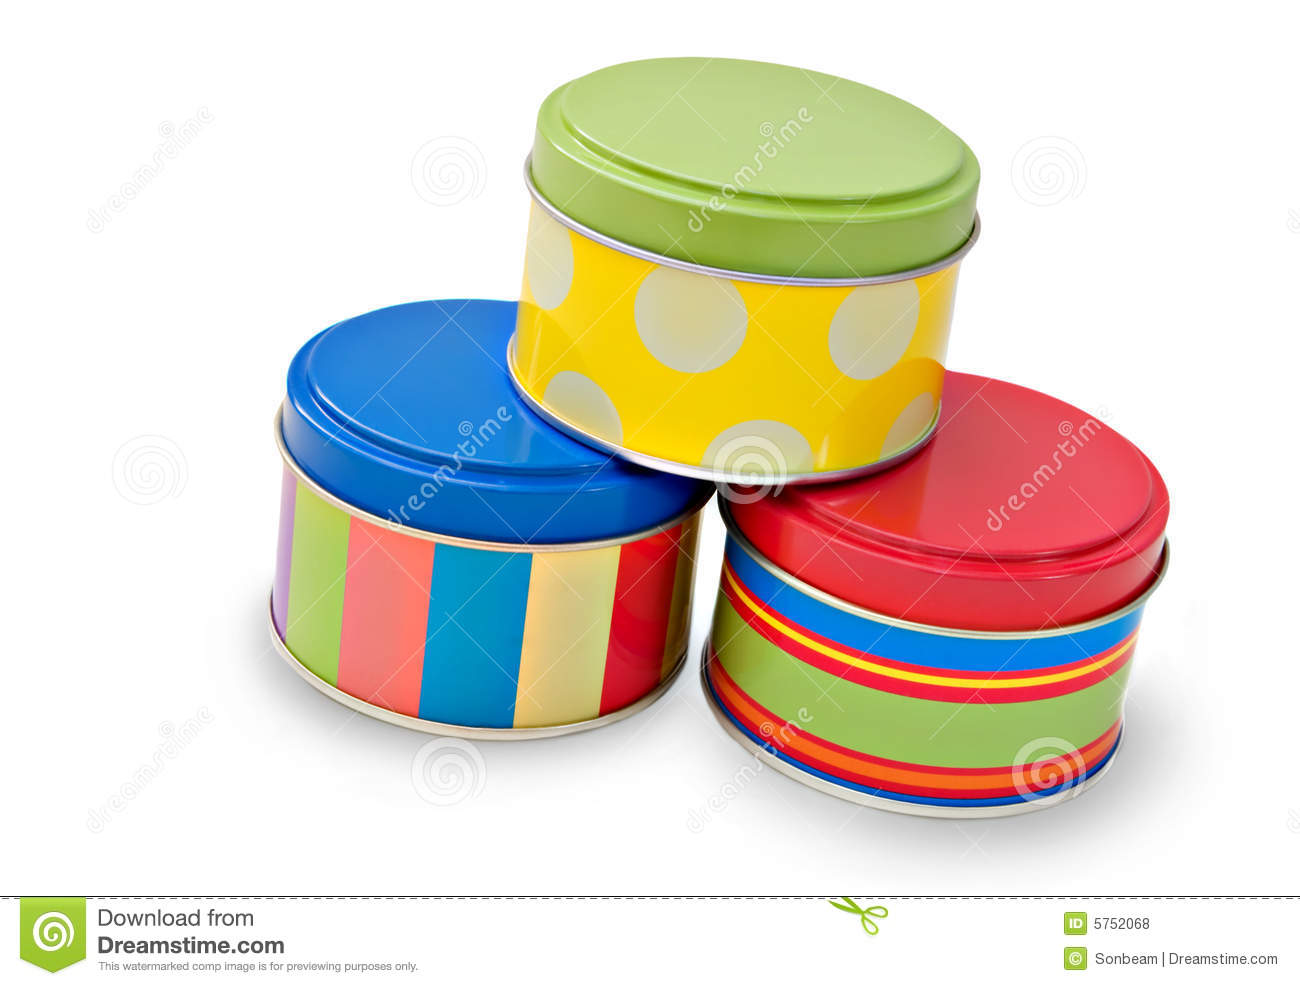 Decorative Cookie Containers Royalty Free Stock Photos Decorative Tins Image 5752068